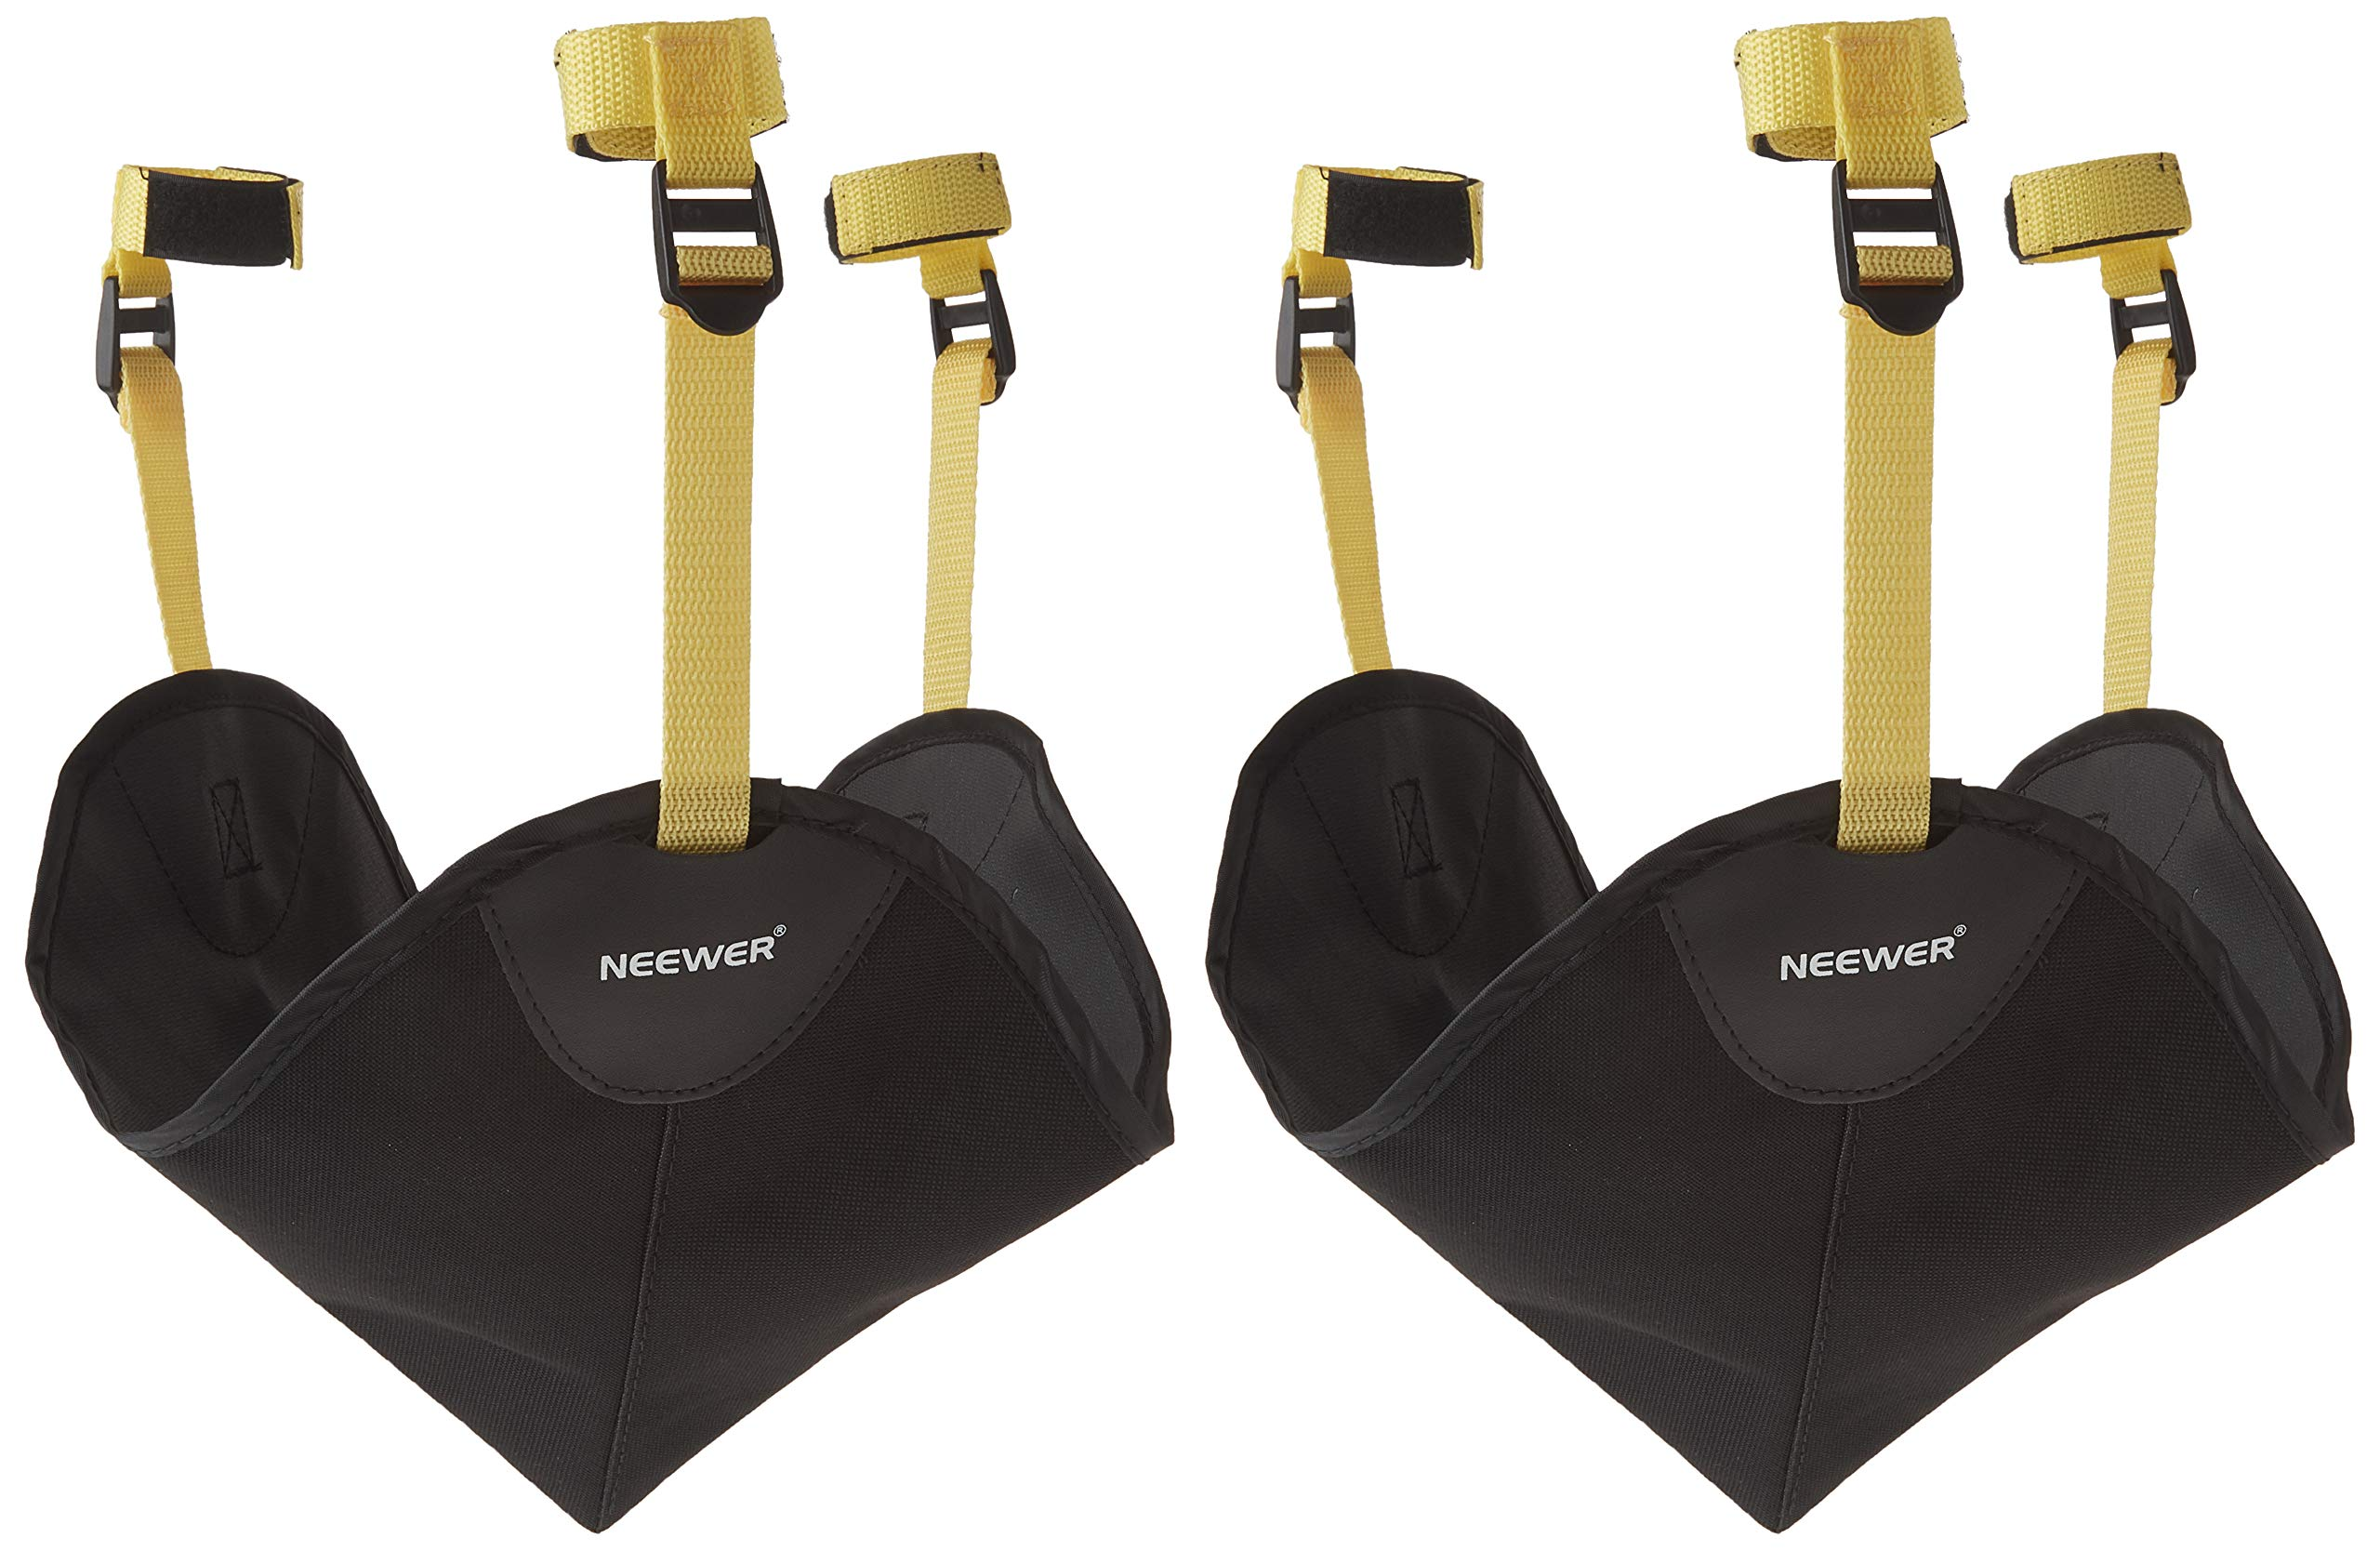 Neewer 2 Pack Black Heavy Duty Photographic Studio Video SandBag for Gitzo,Manfrotto,Didea and Benro Series Stands and Other Universal Light Stands, Boom Stand and Tripod by Neewer